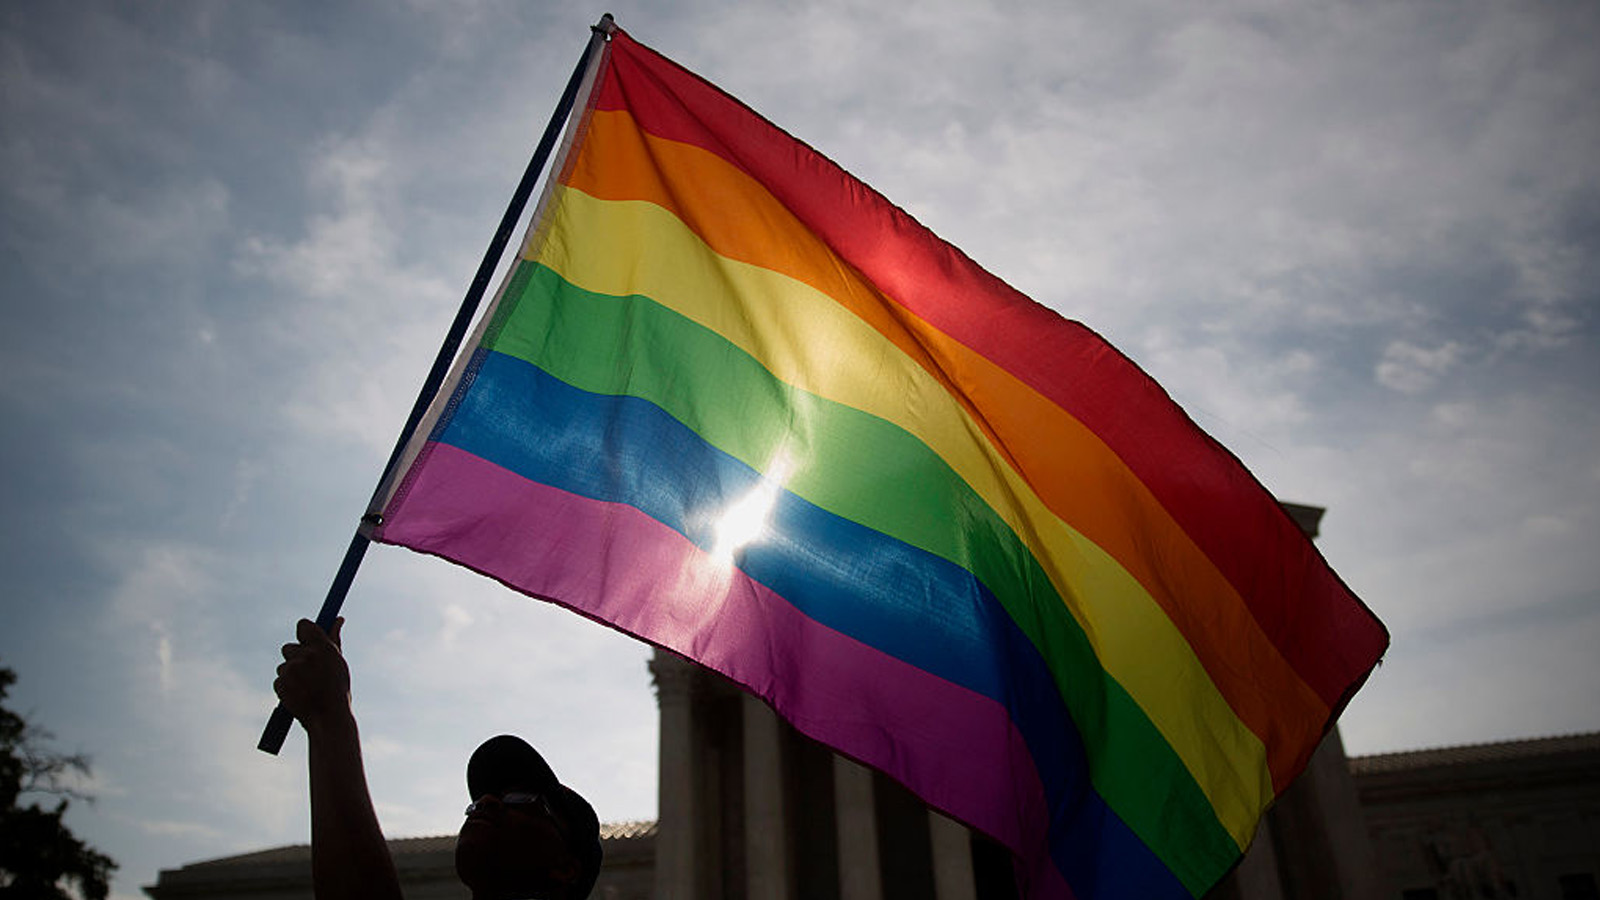 The LGBT PRIDE Act Would Combat Violence, Suicide in LGBTQ Community